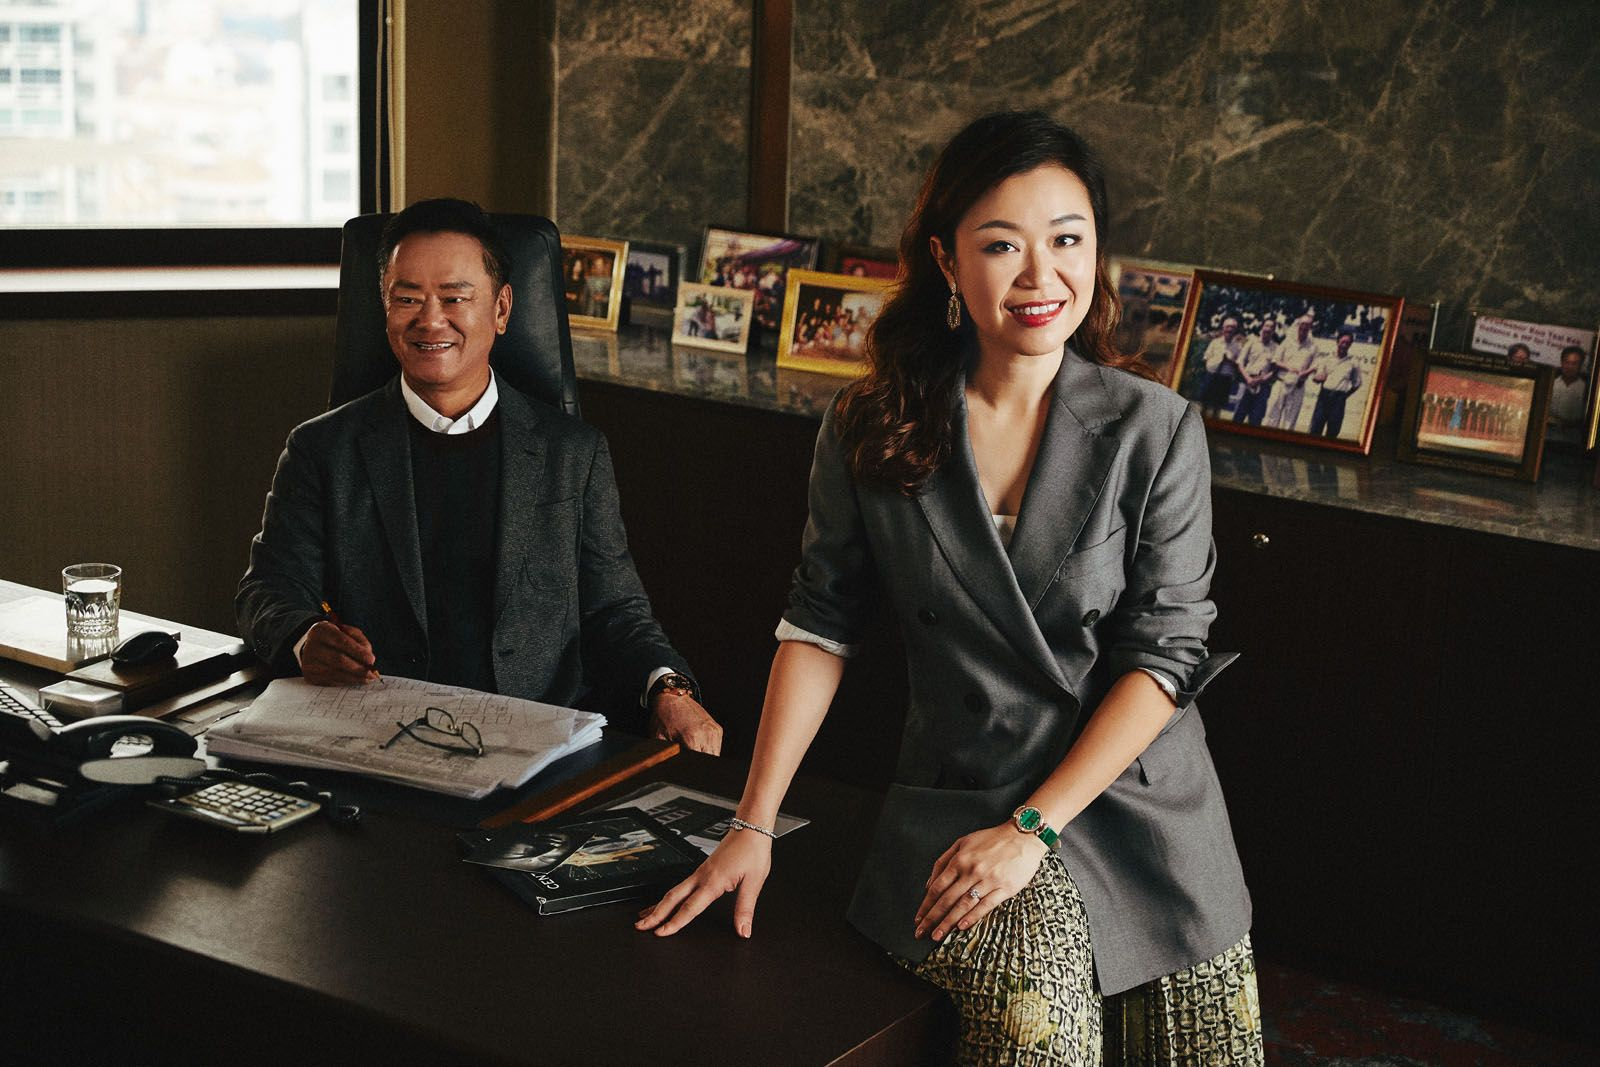 Hotel 81 Founder Choo Chong Ngen And His CEO Daughter Carolyn Have Lofty Ambitions Of Going Global With Their Company